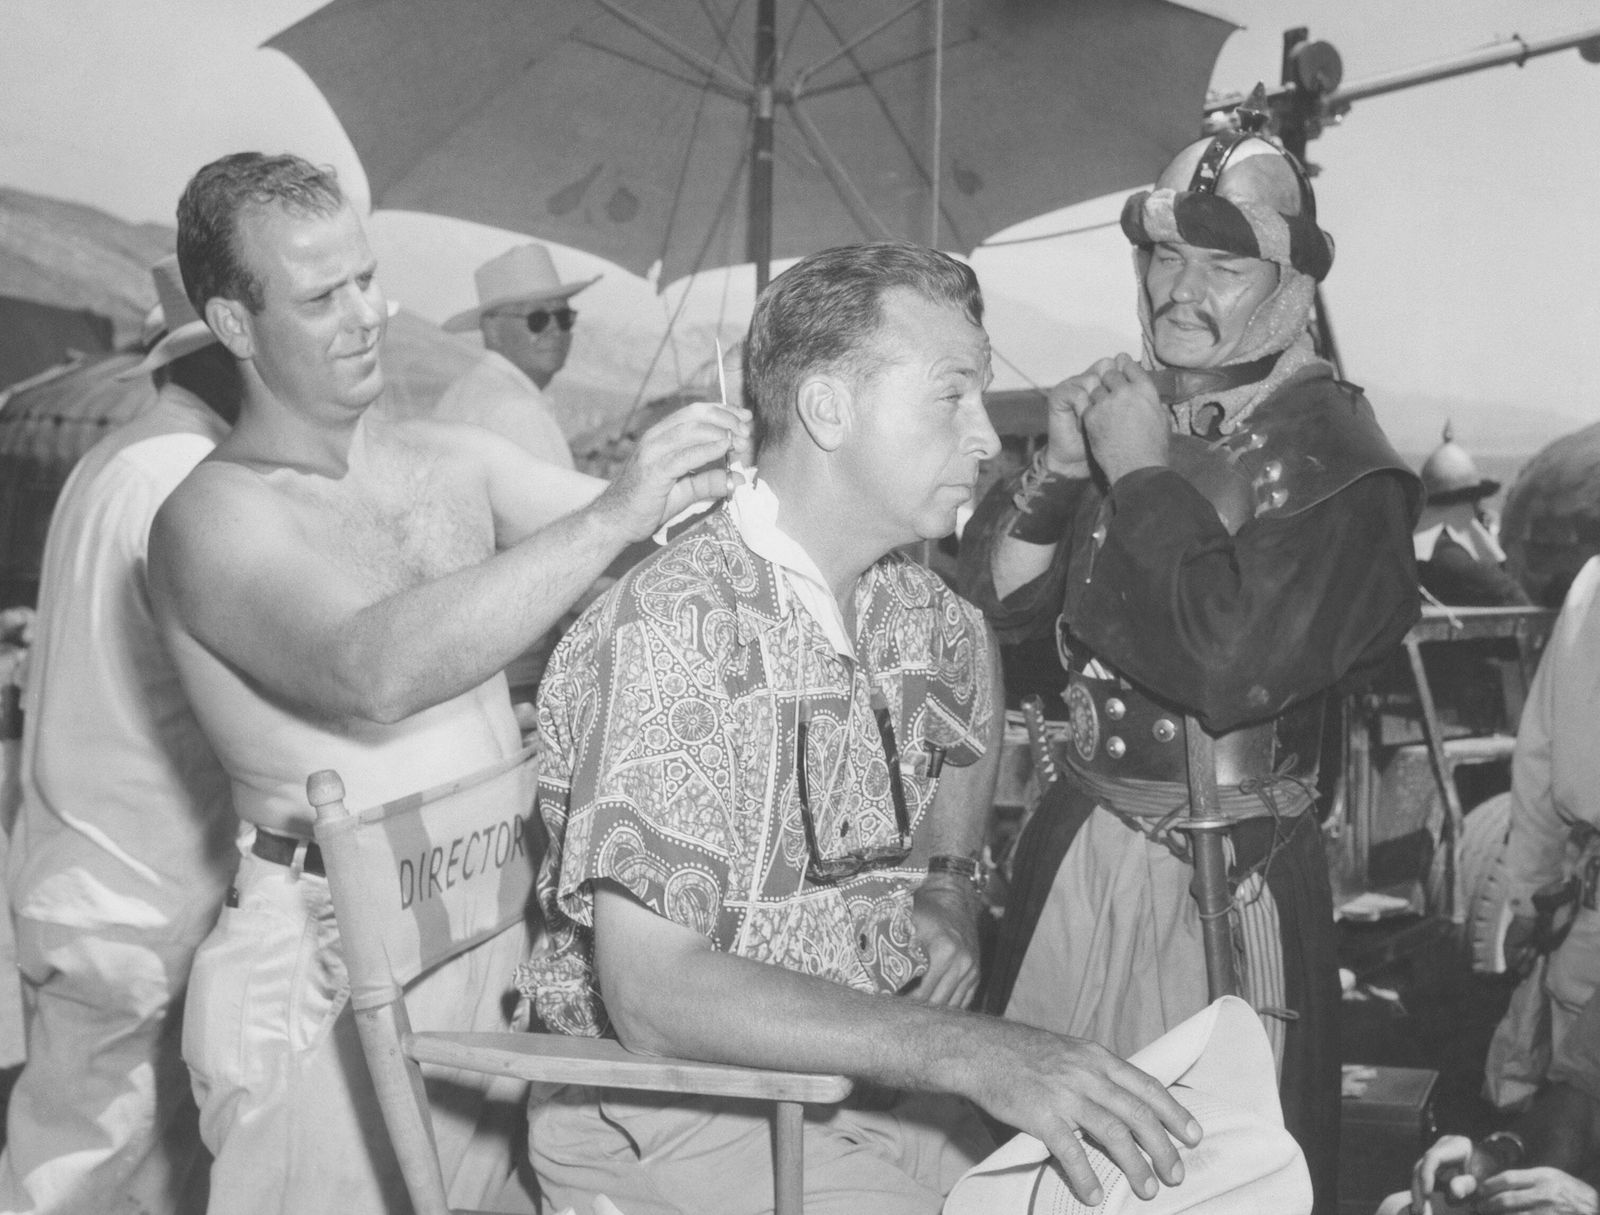 THE CONQUEROR, from left: makeup man Jimmy House cuts director Dick Powell s hair as Leo Gordon looks on, 1956 !ACHTUNG